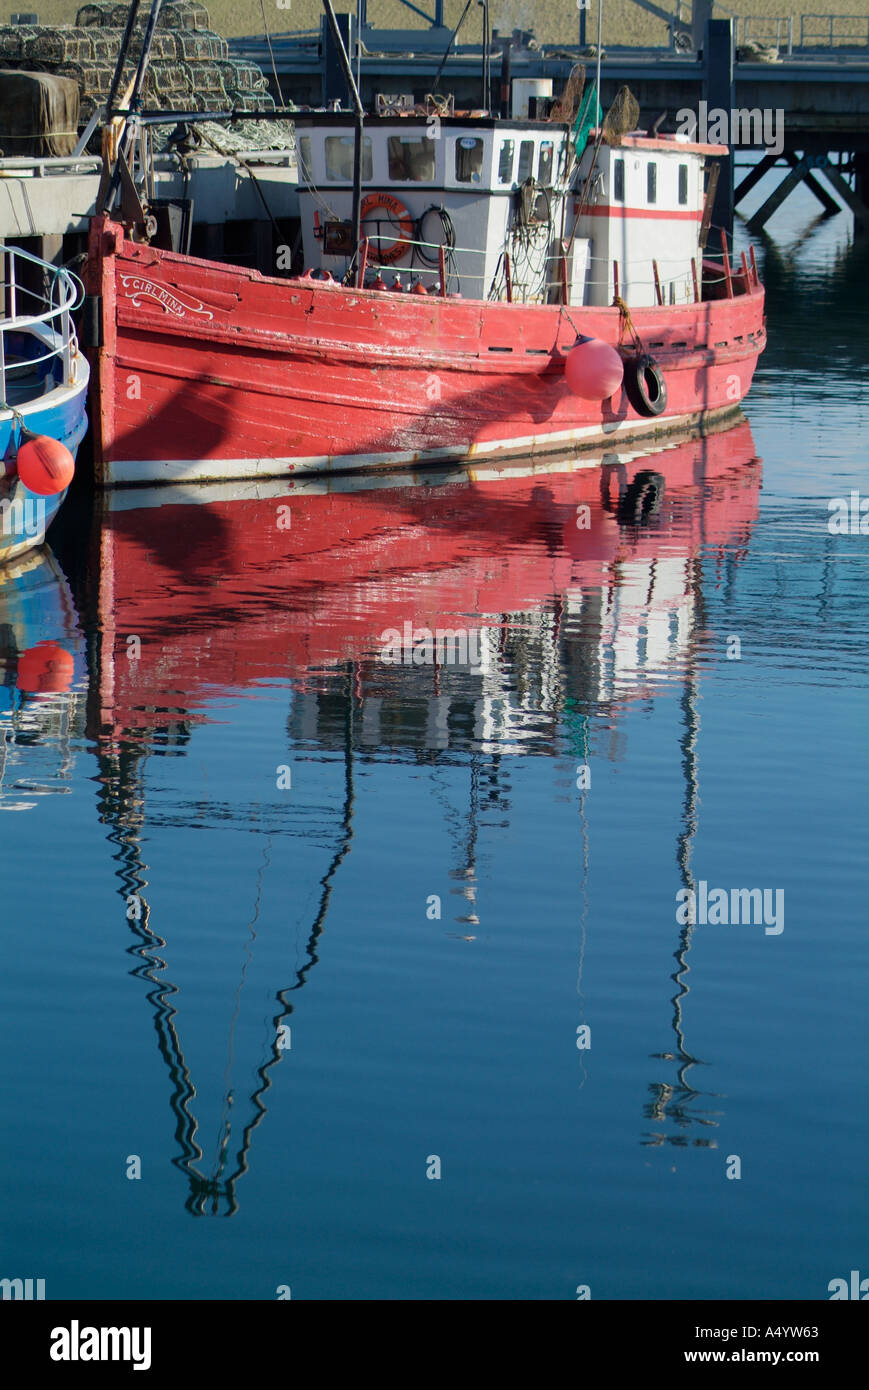 dh Stromness Harbour STROMNESS ORKNEY Red hulled converted trawler diving boat at quayside dive reflect Stock Photo